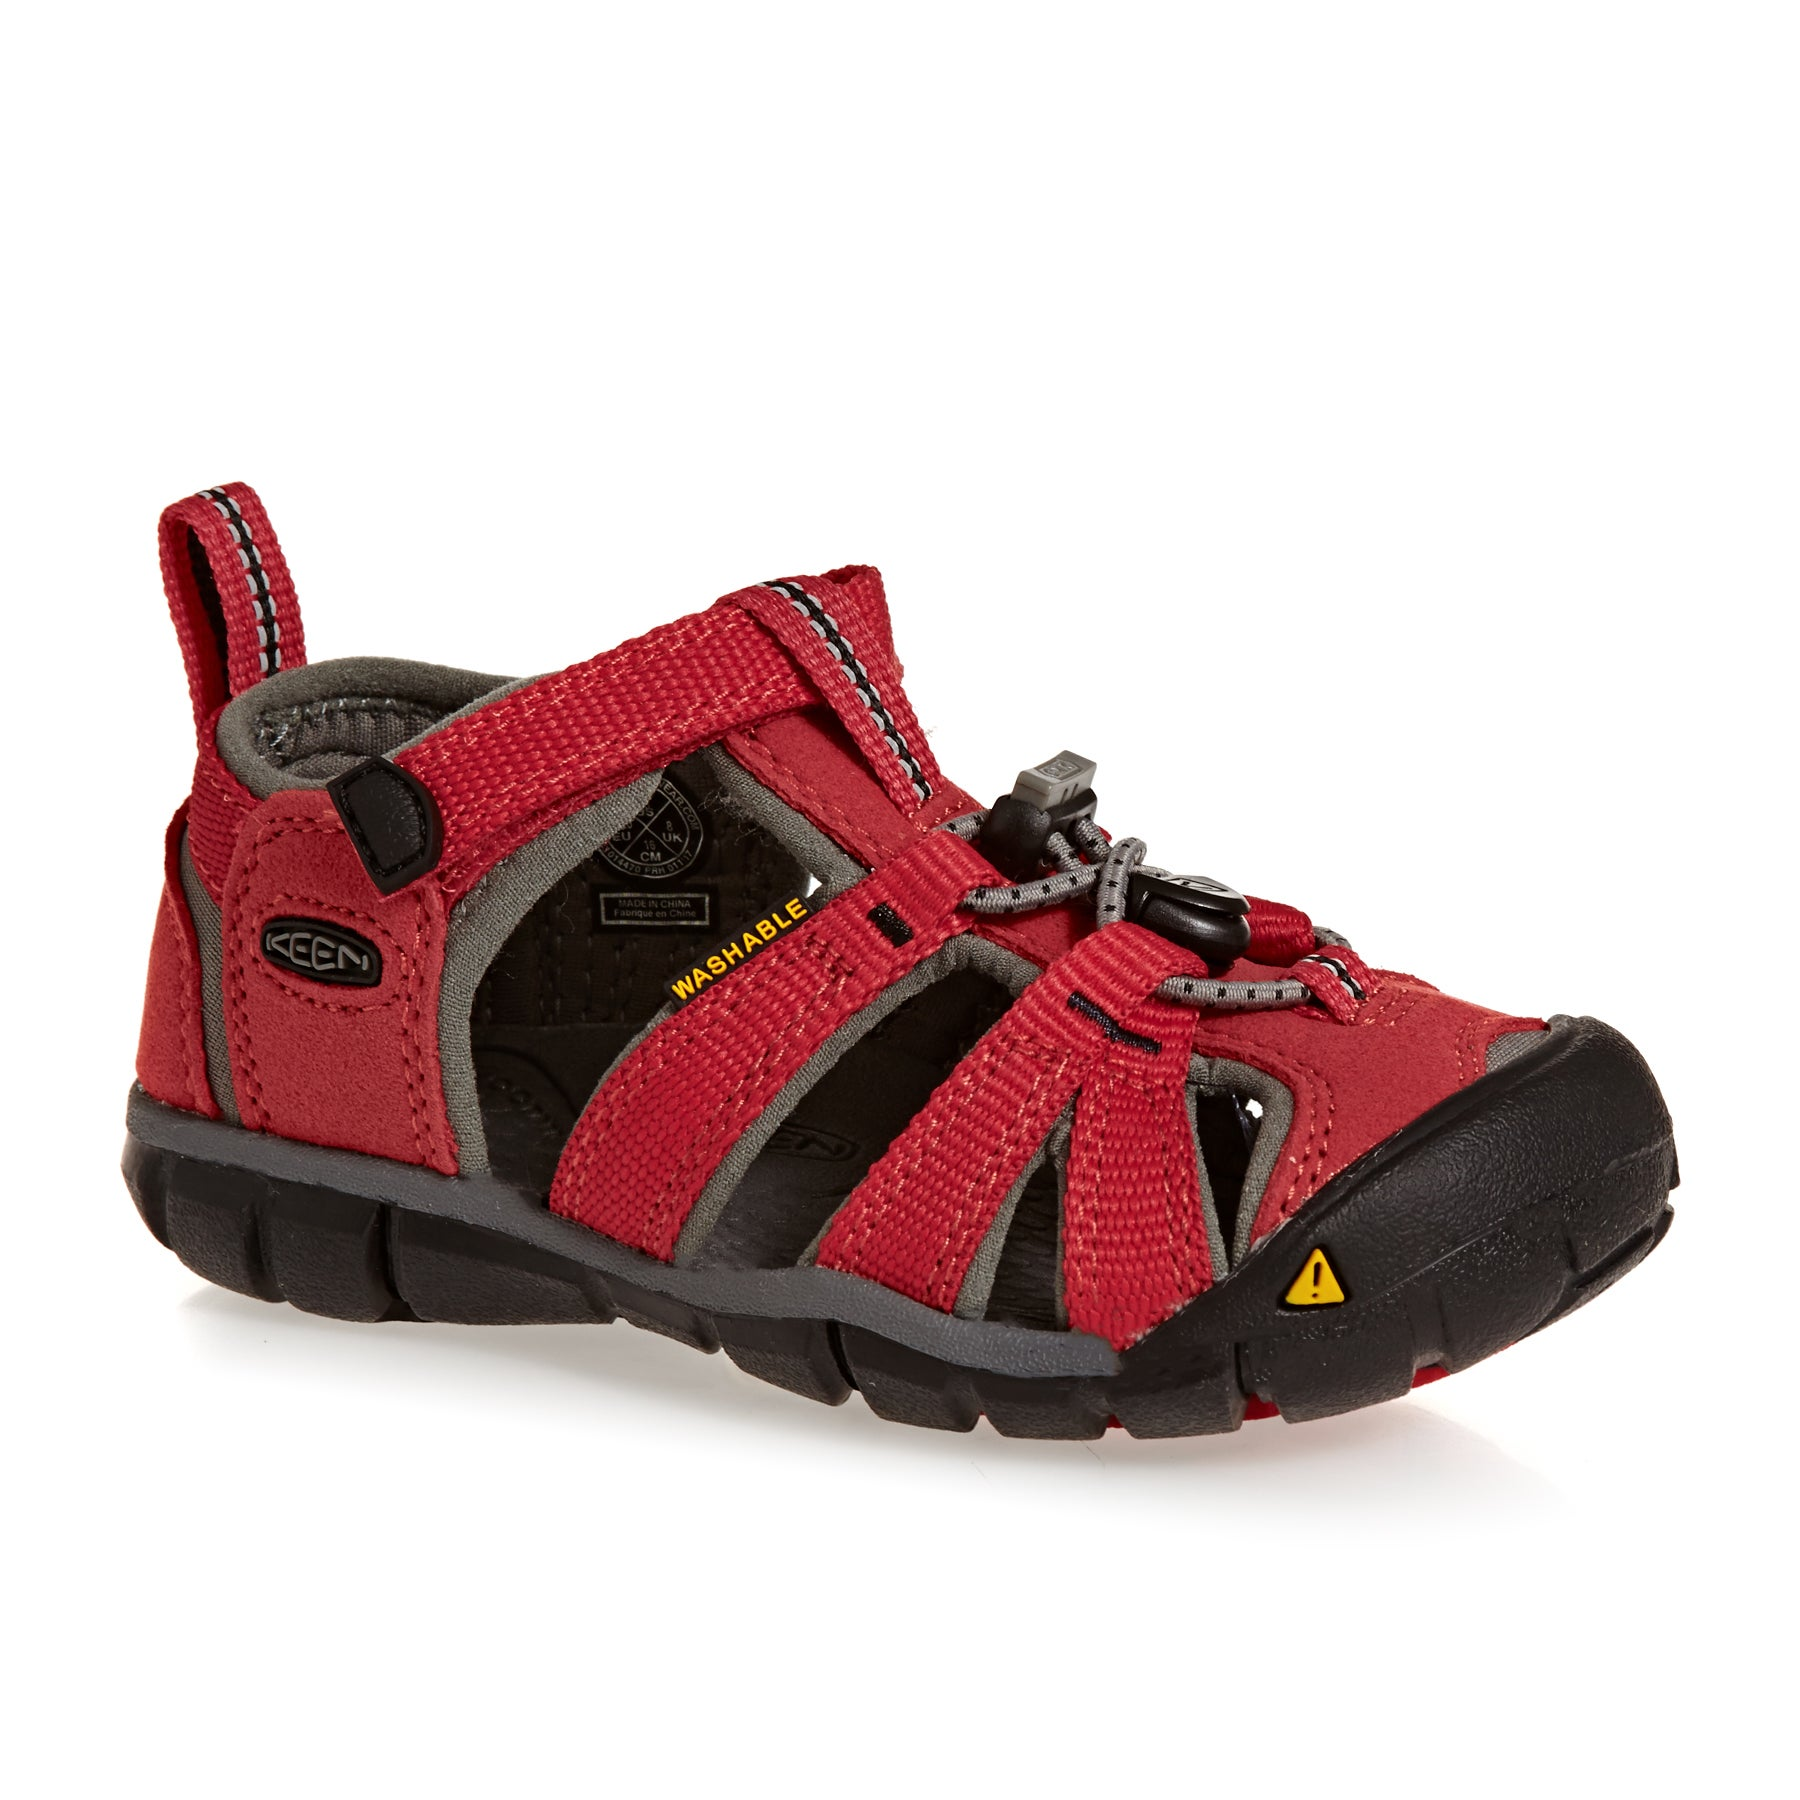 Keen Seacamp II CNX Kids Sandals - Racing Red Gargoyle